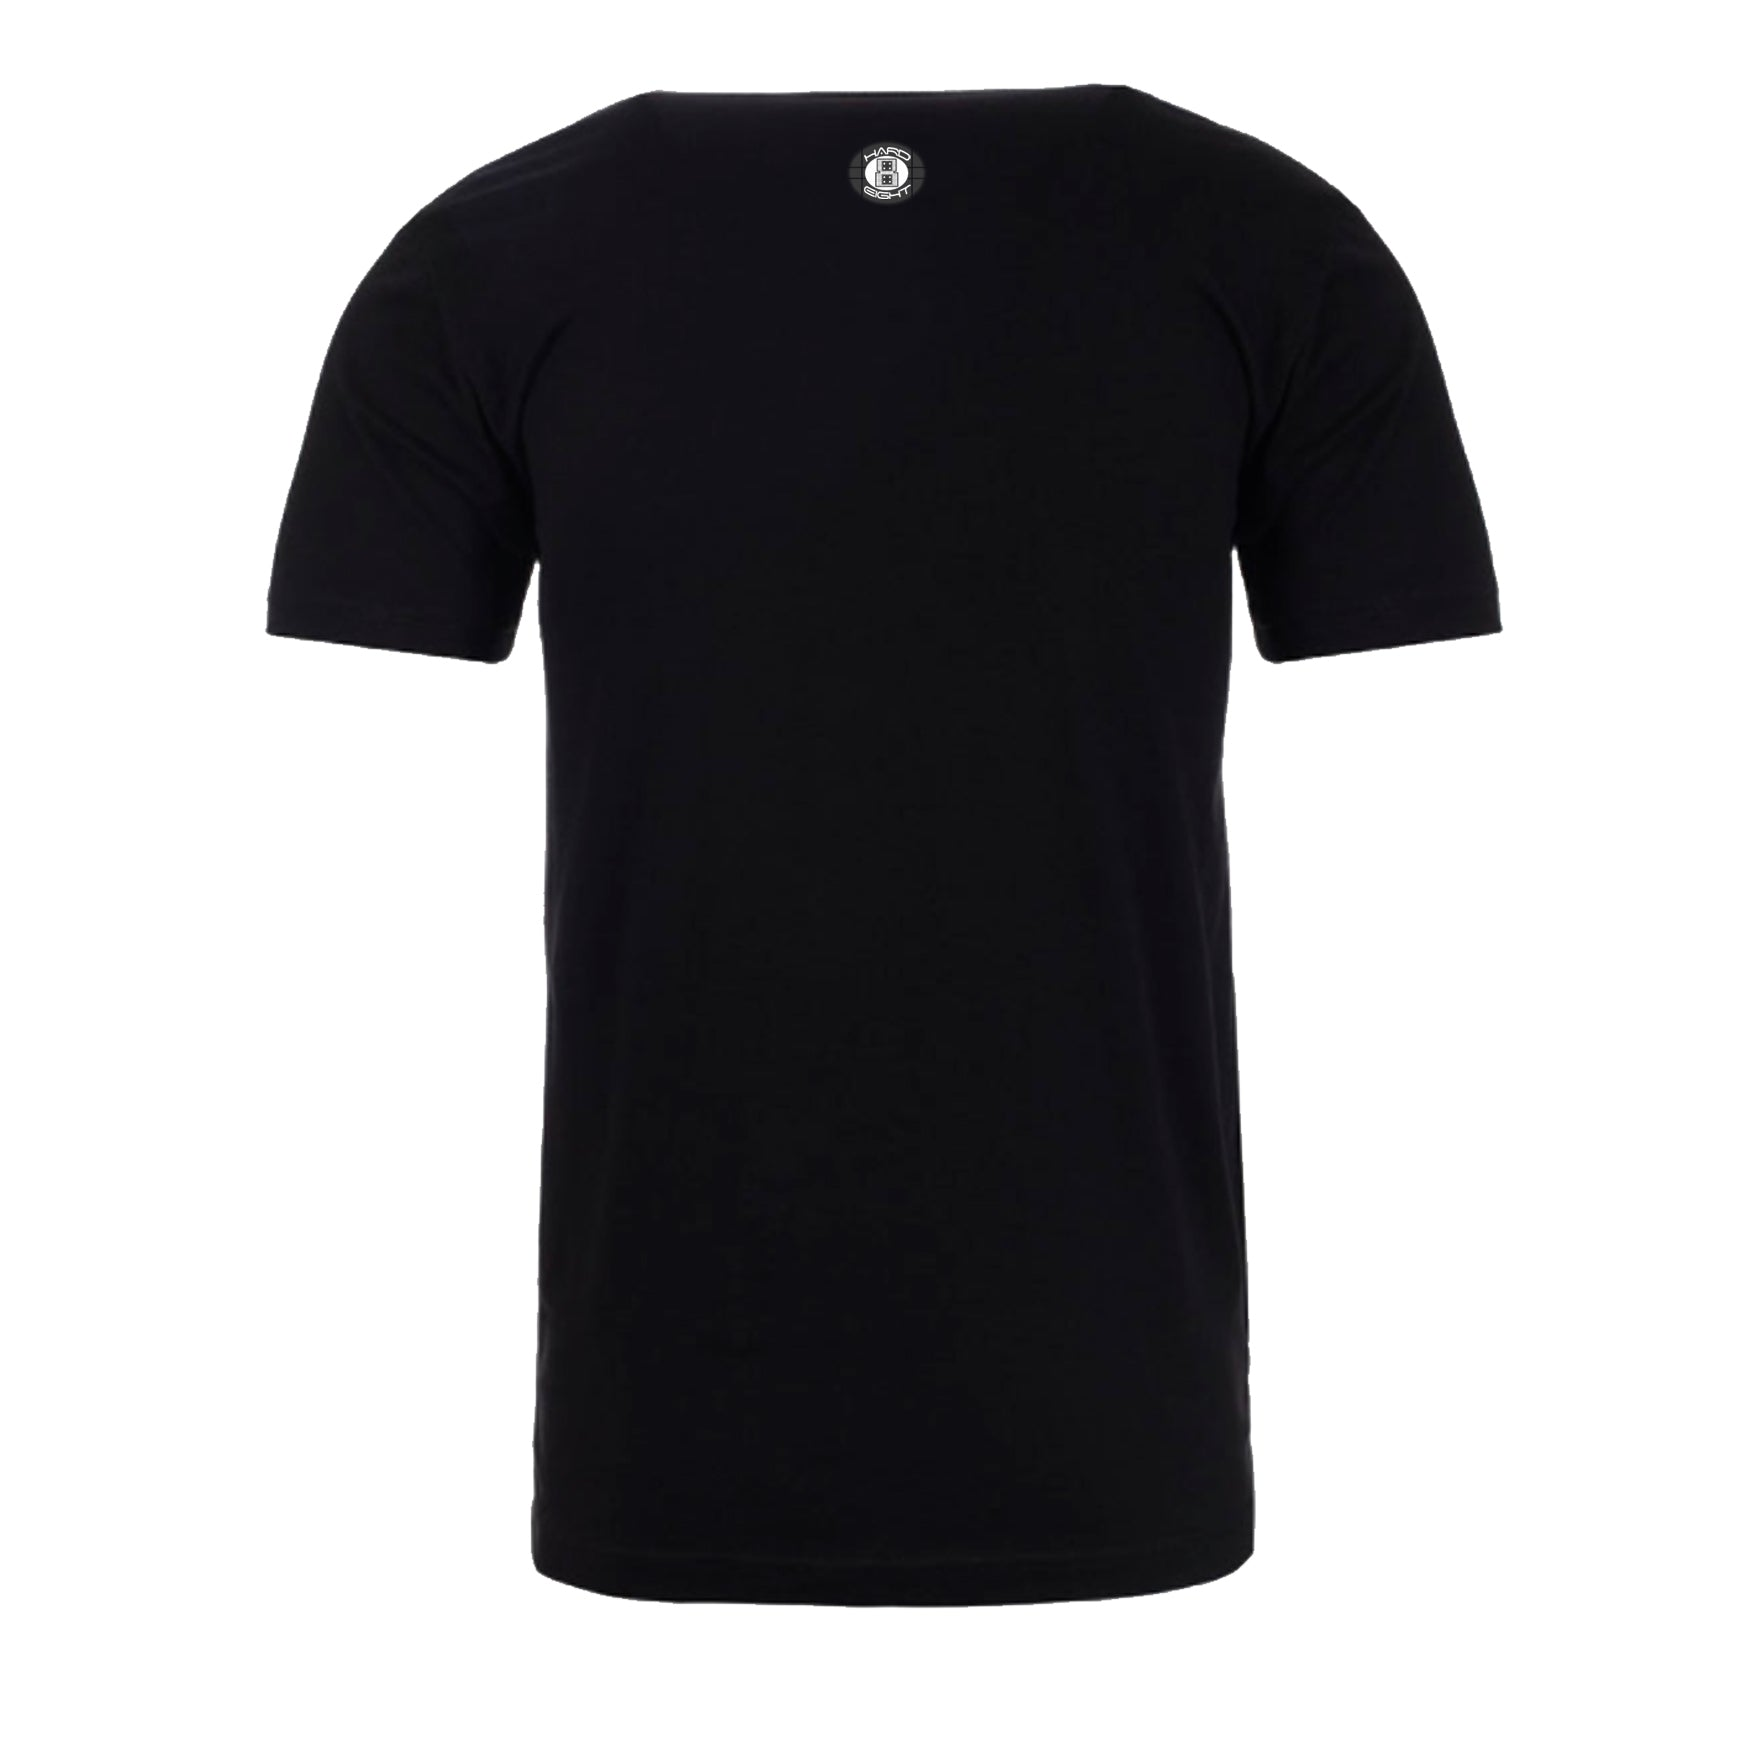 "MEN'S ""ANKH SLEEVE"" SUEDED COTTON BLEND V-Neck Black"